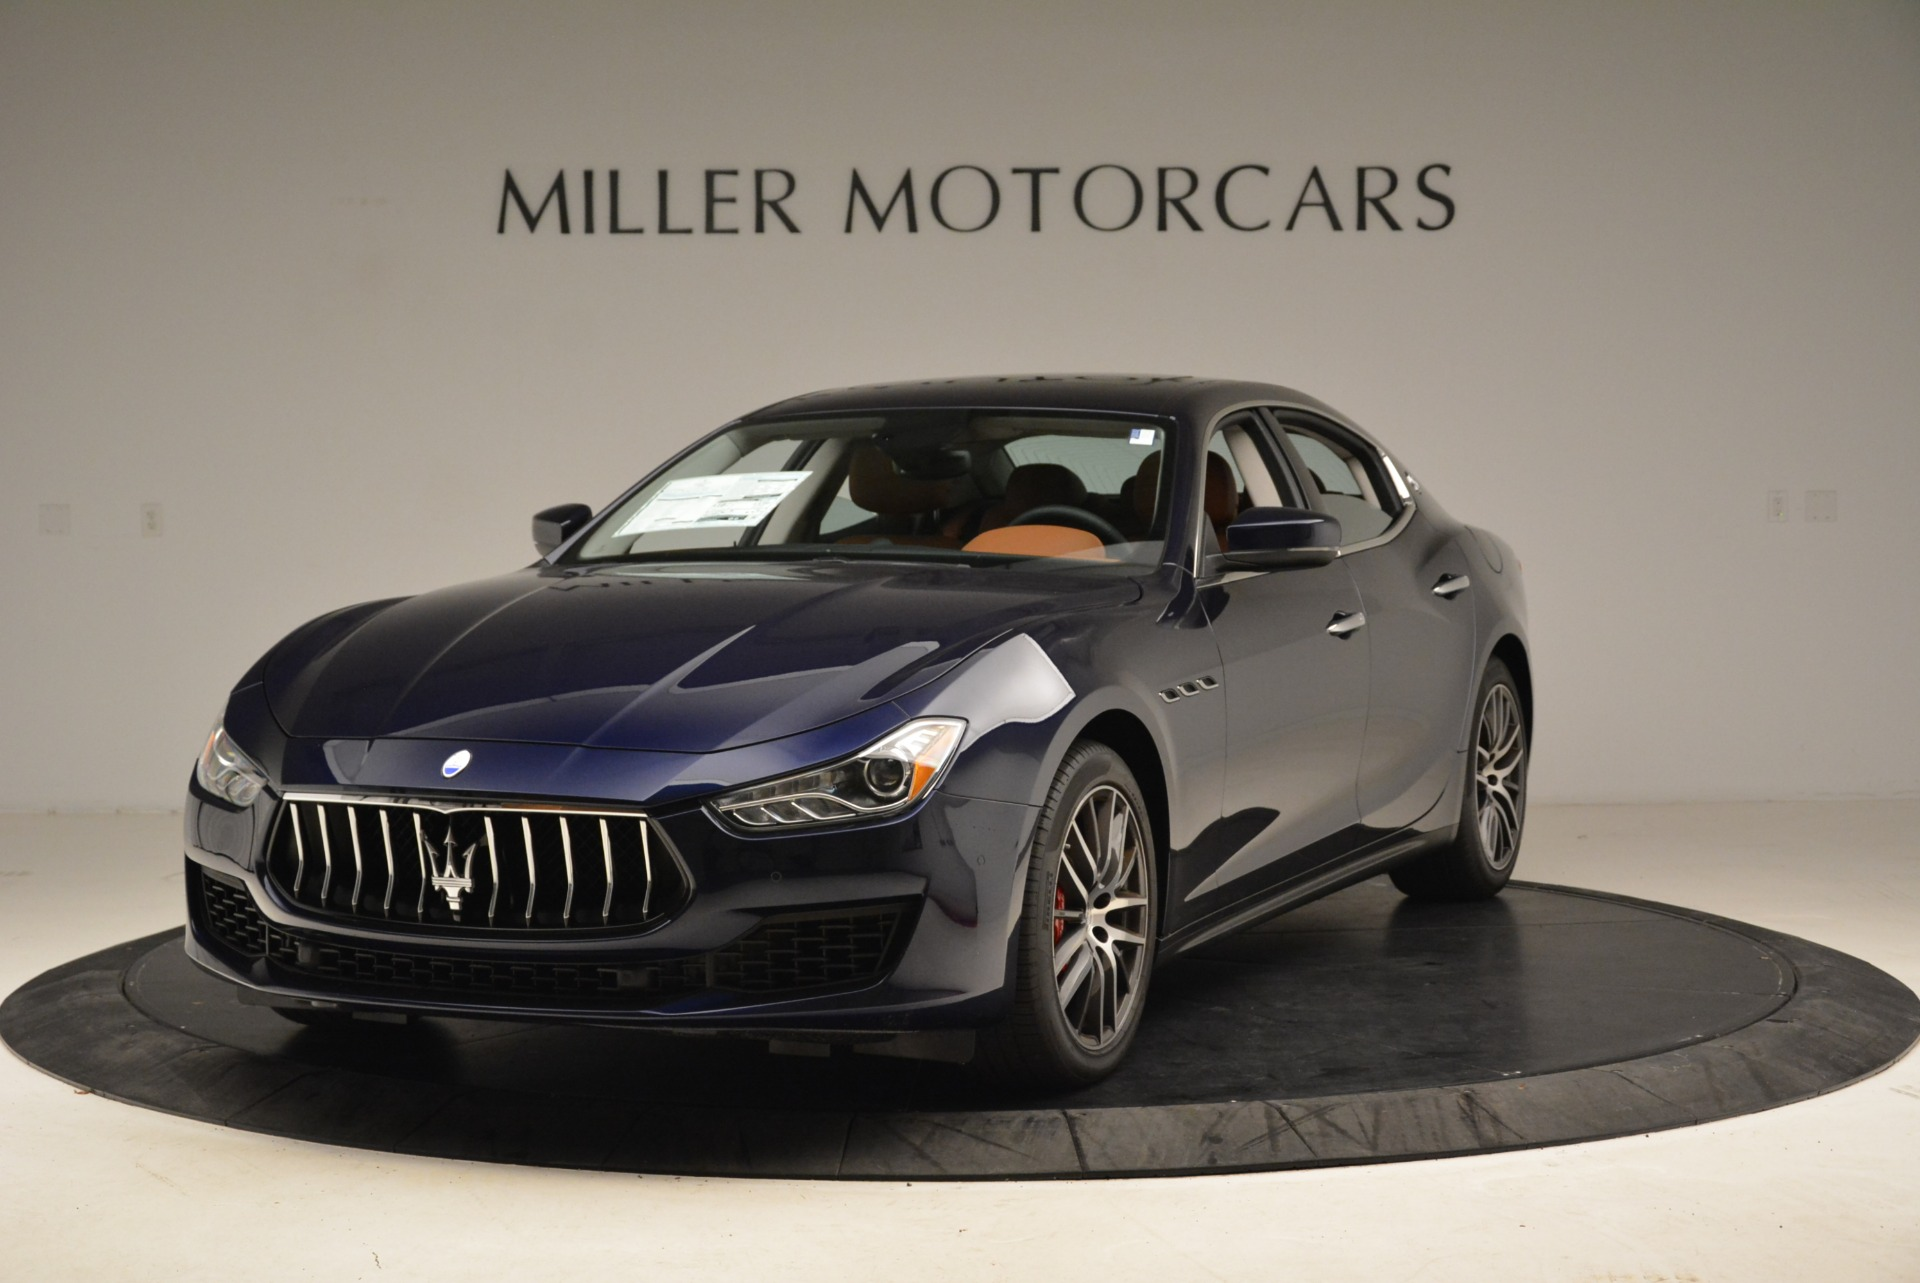 Used 2019 Maserati Ghibli S Q4 for sale $61,900 at Maserati of Westport in Westport CT 06880 1